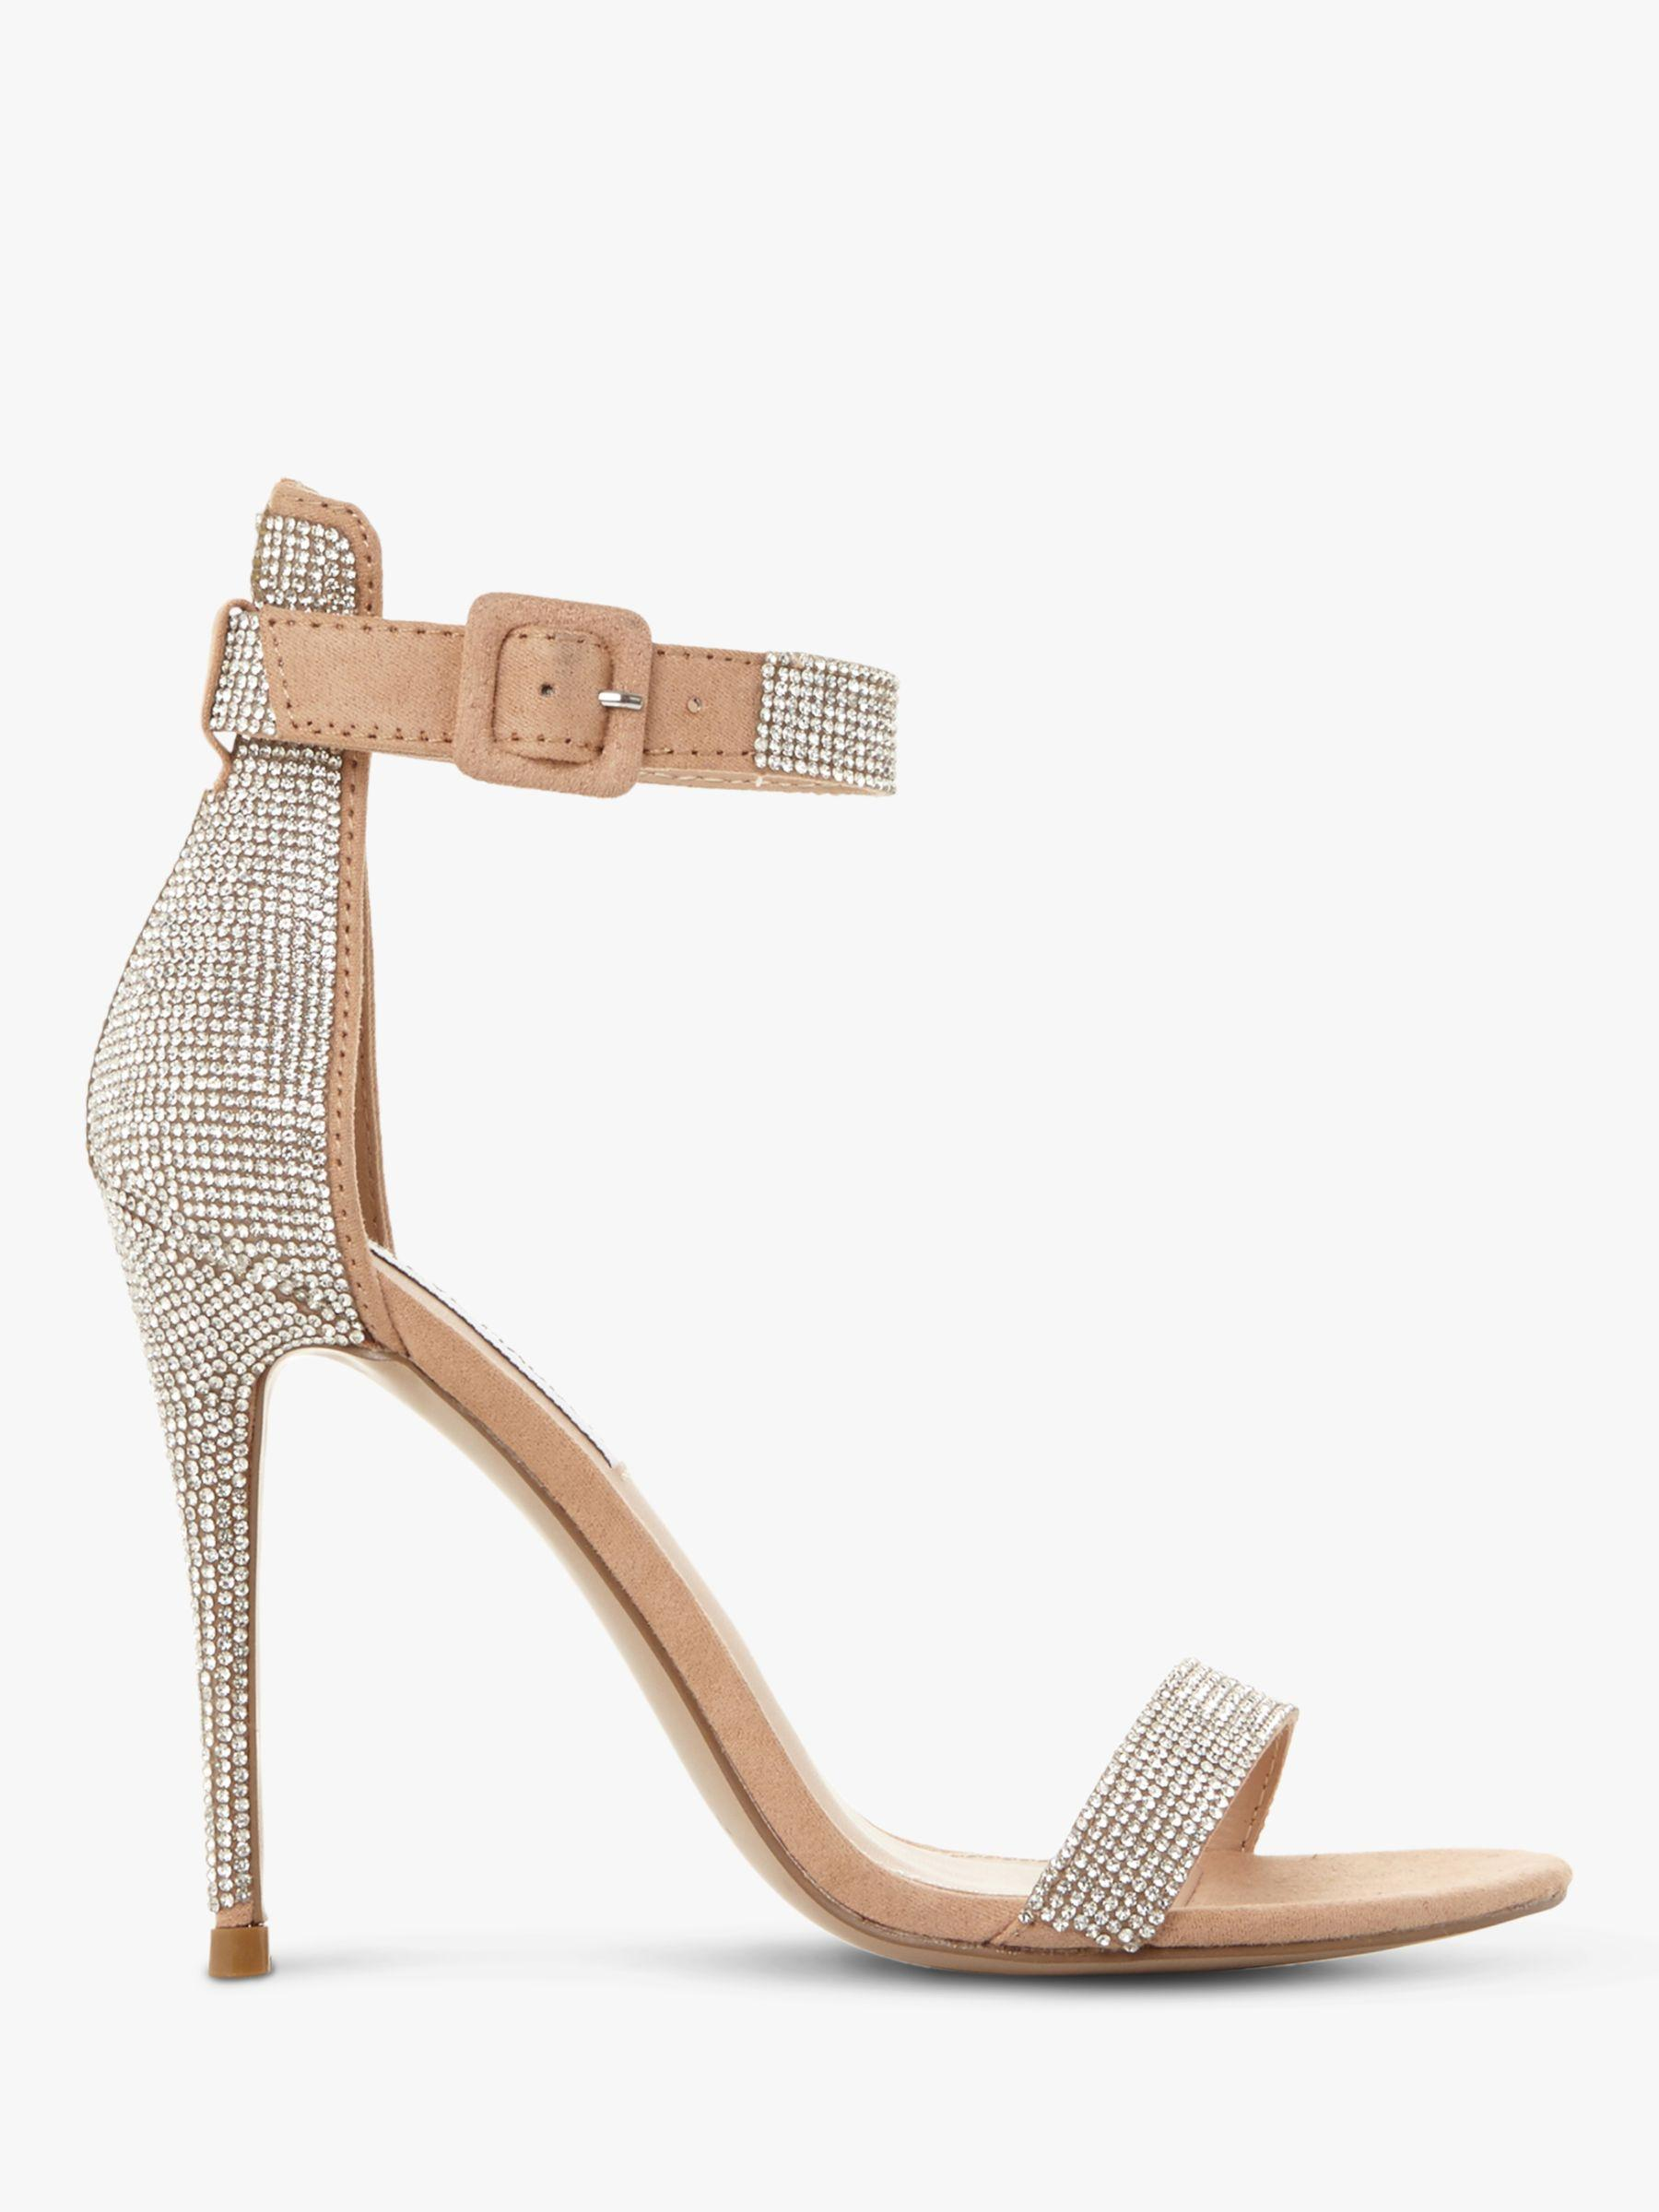 32e114a388c Steve Madden. Women s Metallic Mischa Embellished Ankle Strap Heeled Sandals